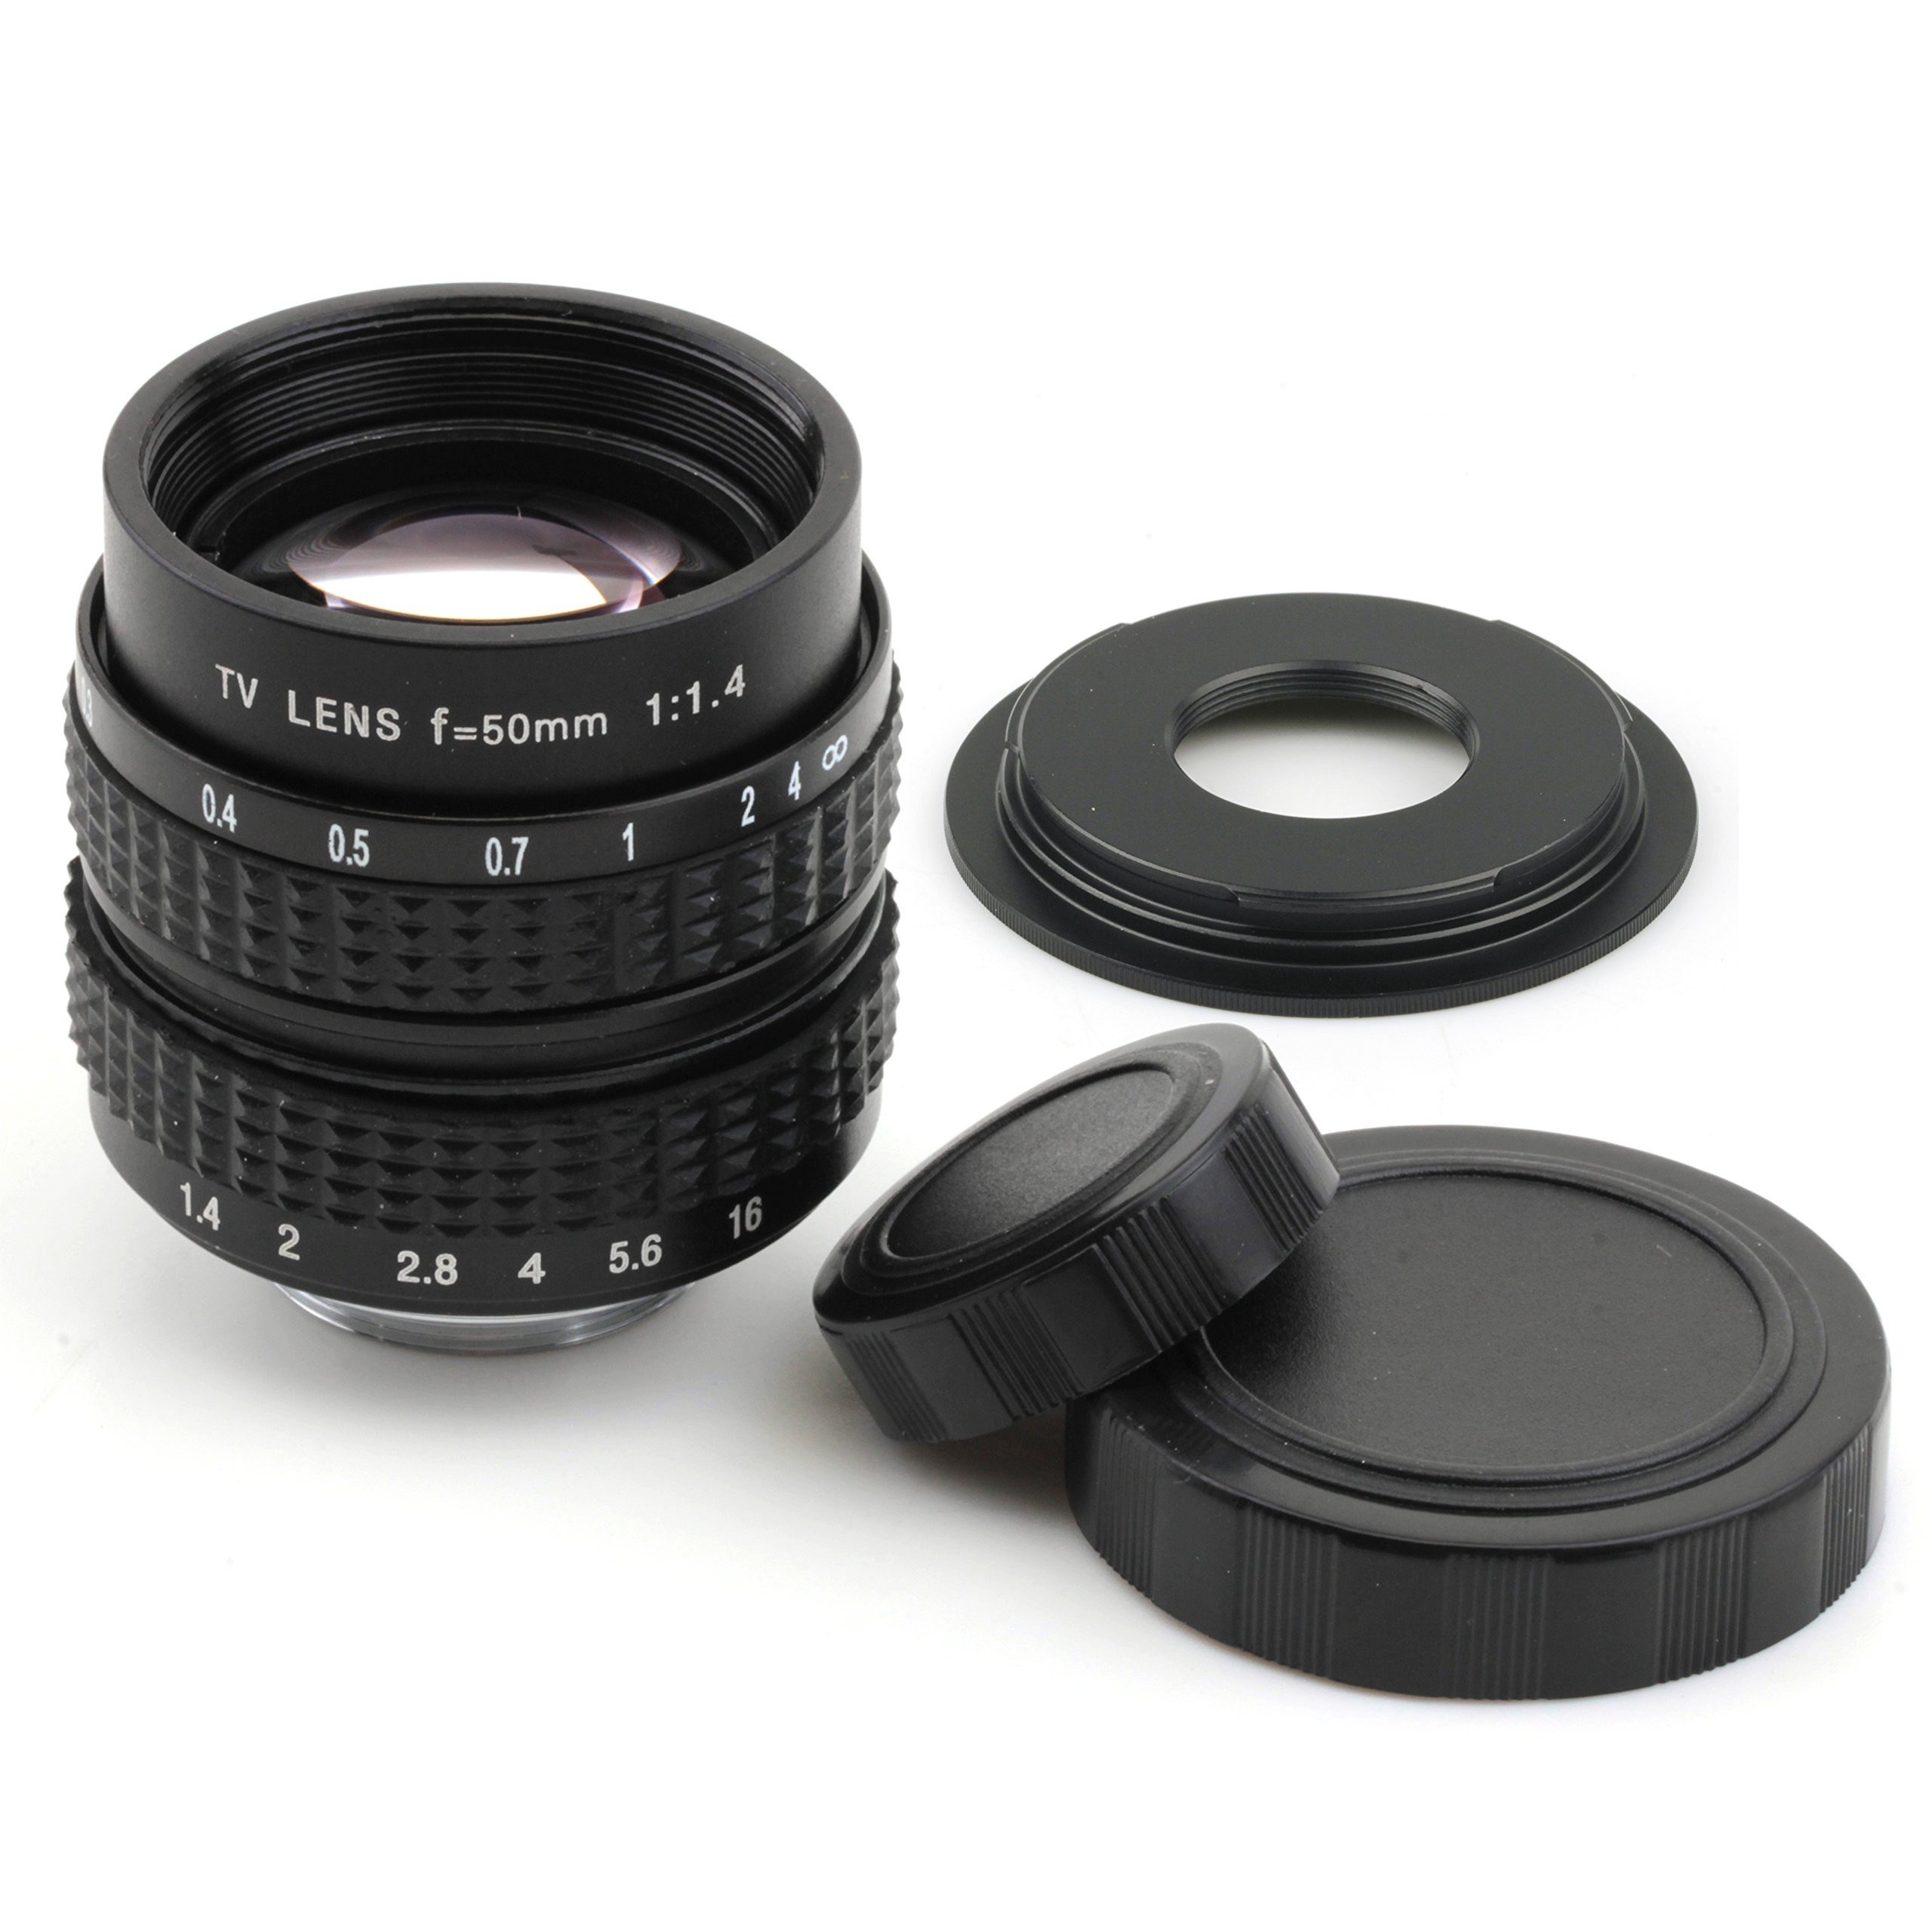 Pixco 50mm F1.4 CCTV Lens for C Mount Camera + 16mm C Mount Lens to Fujifilm Adapter to Fujifilm X Camera Lens Adapter by Pixco